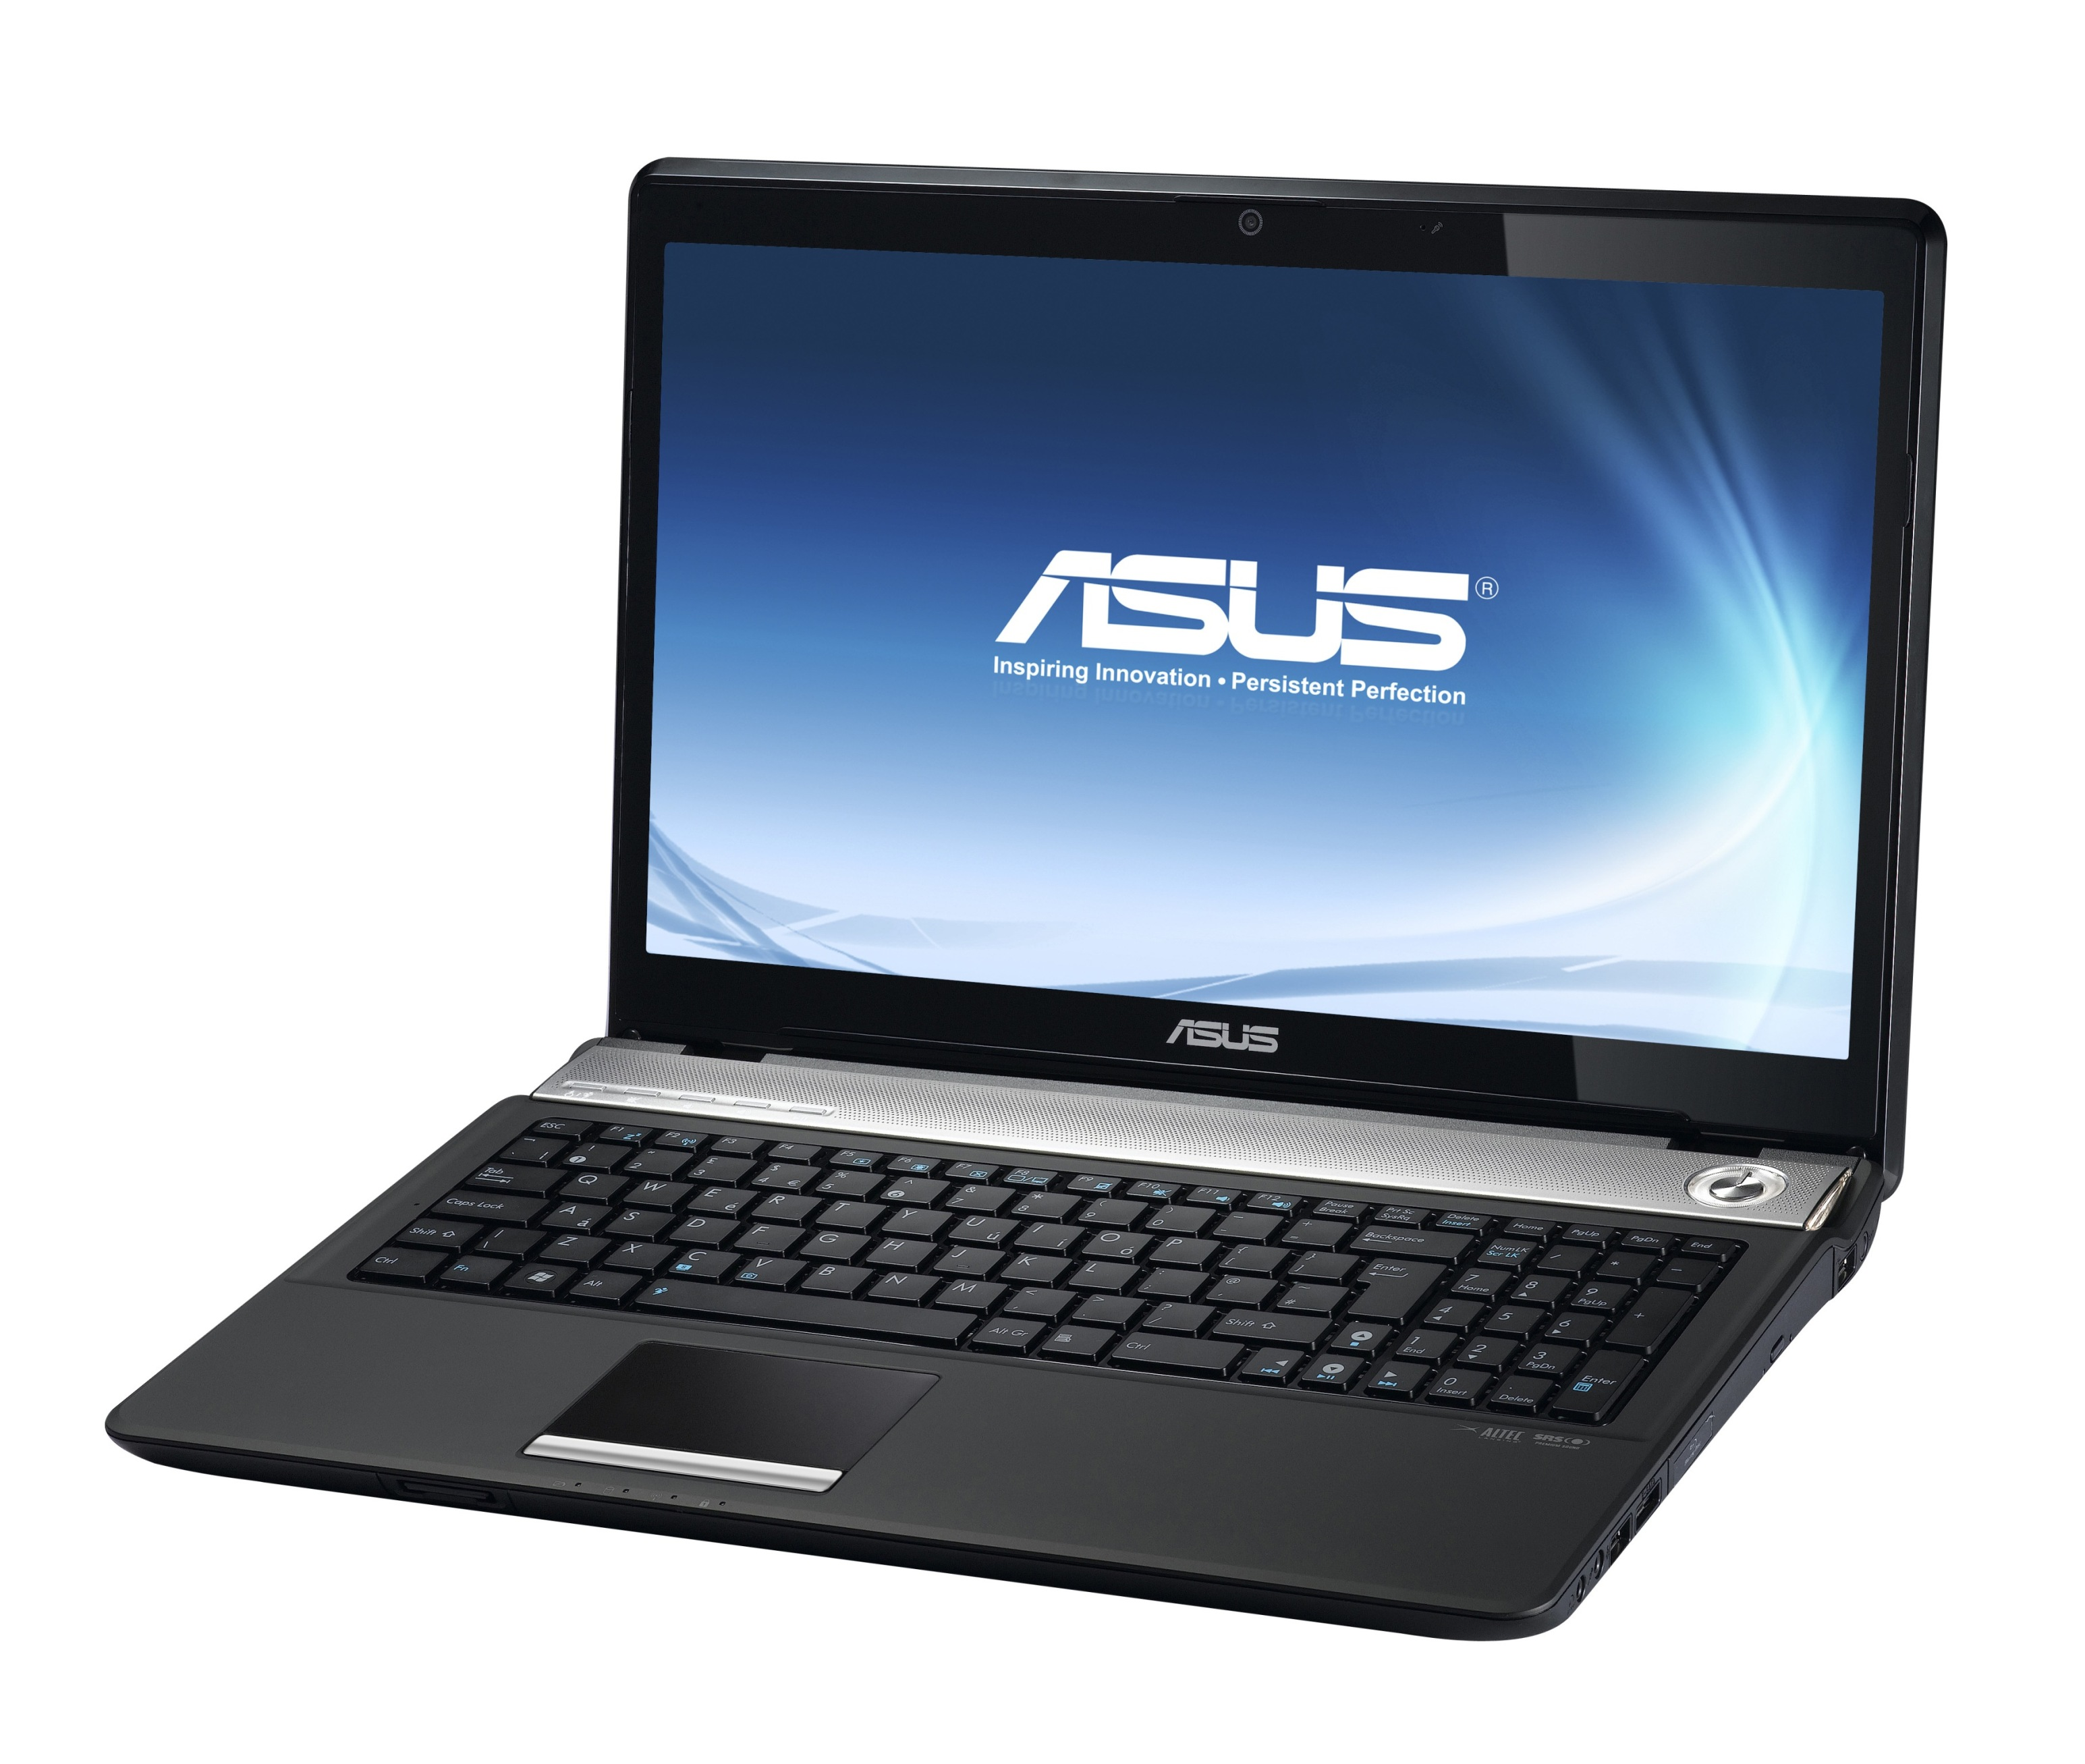 ASUS Launches New Notebooks with NVIDIA® Optimus™ Technology